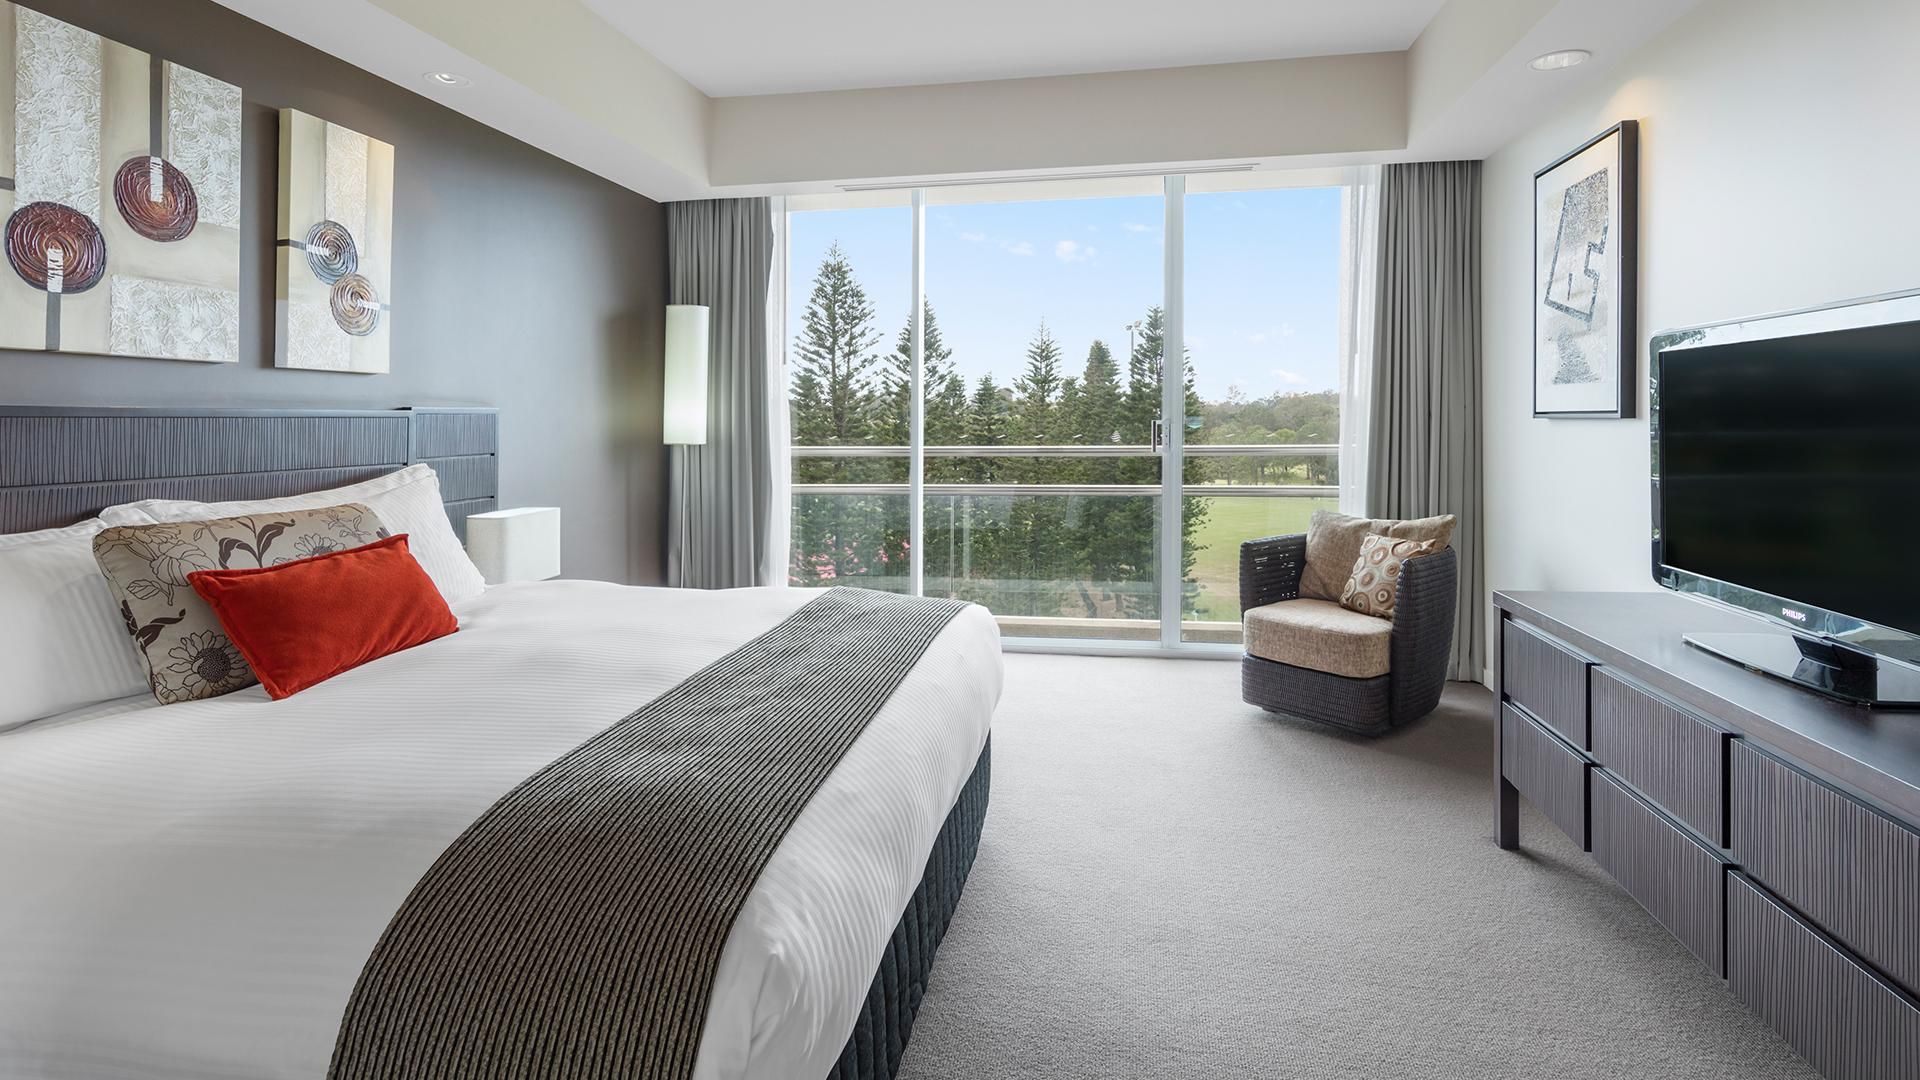 Superior King Room image 1 at RACV Royal Pines Resort by City of Gold Coast, Queensland, Australia